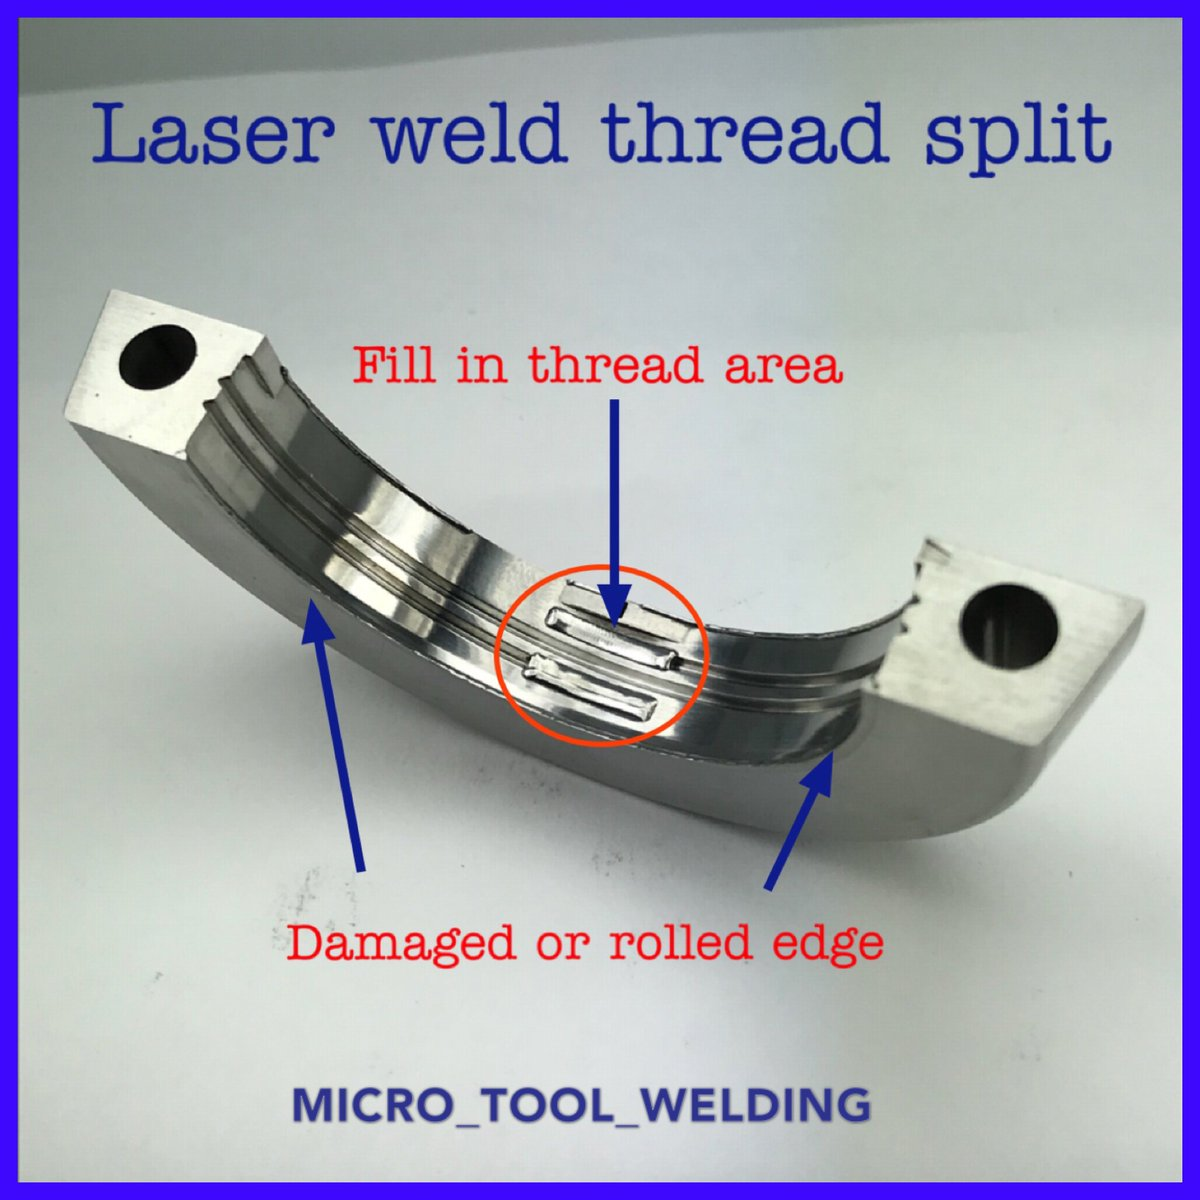 hight resolution of we used the laser welding process to fill in the thread area on this highly polished molding surface microtoolwelding laserwelding microlaserwelding